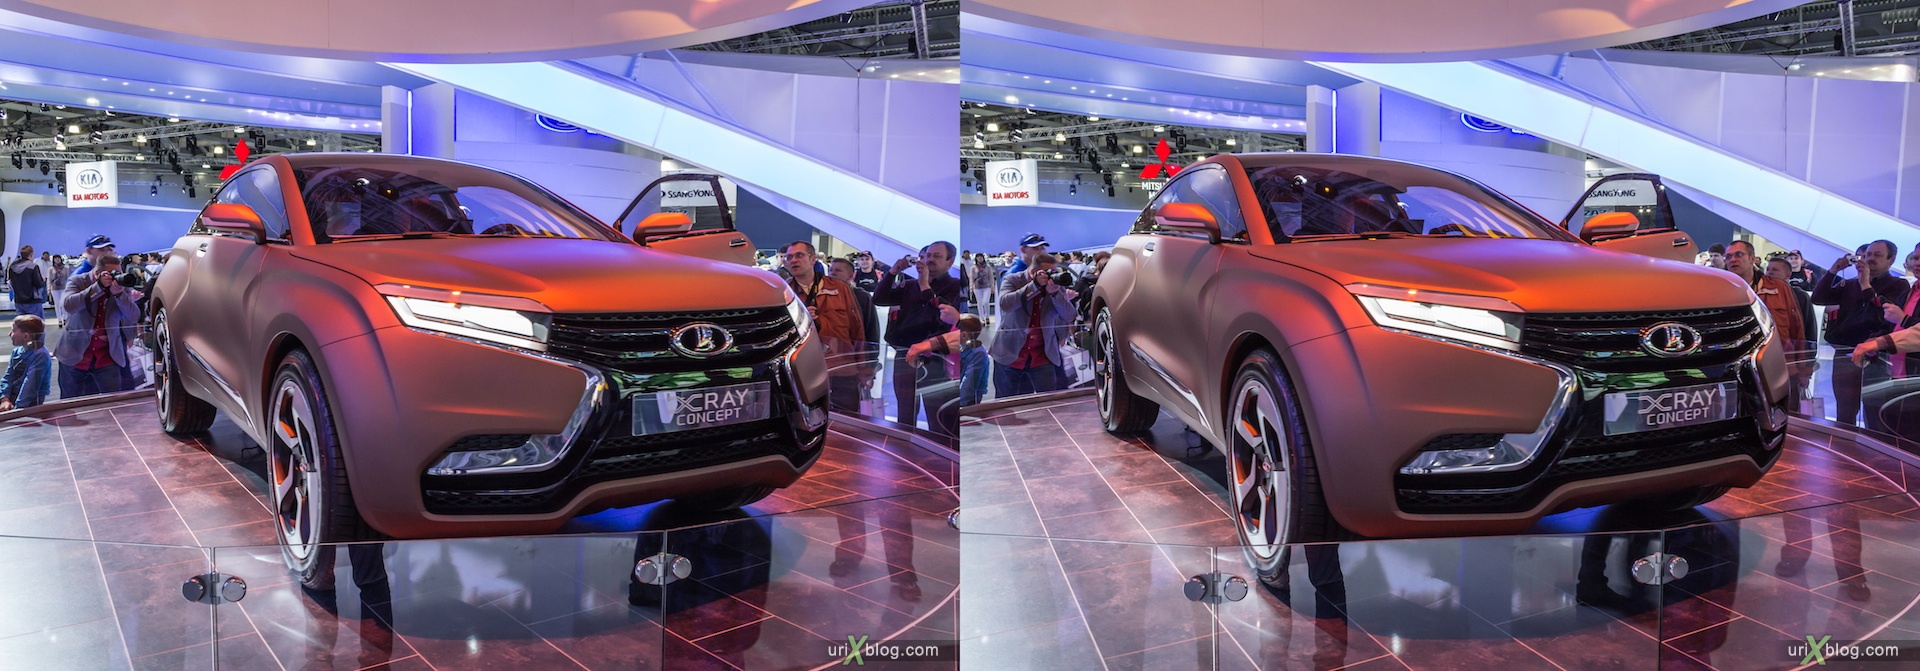 2012, Lada X-Ray Concept, Moscow International Automobile Salon, auto show, 3D, stereo pair, cross-eyed, crossview